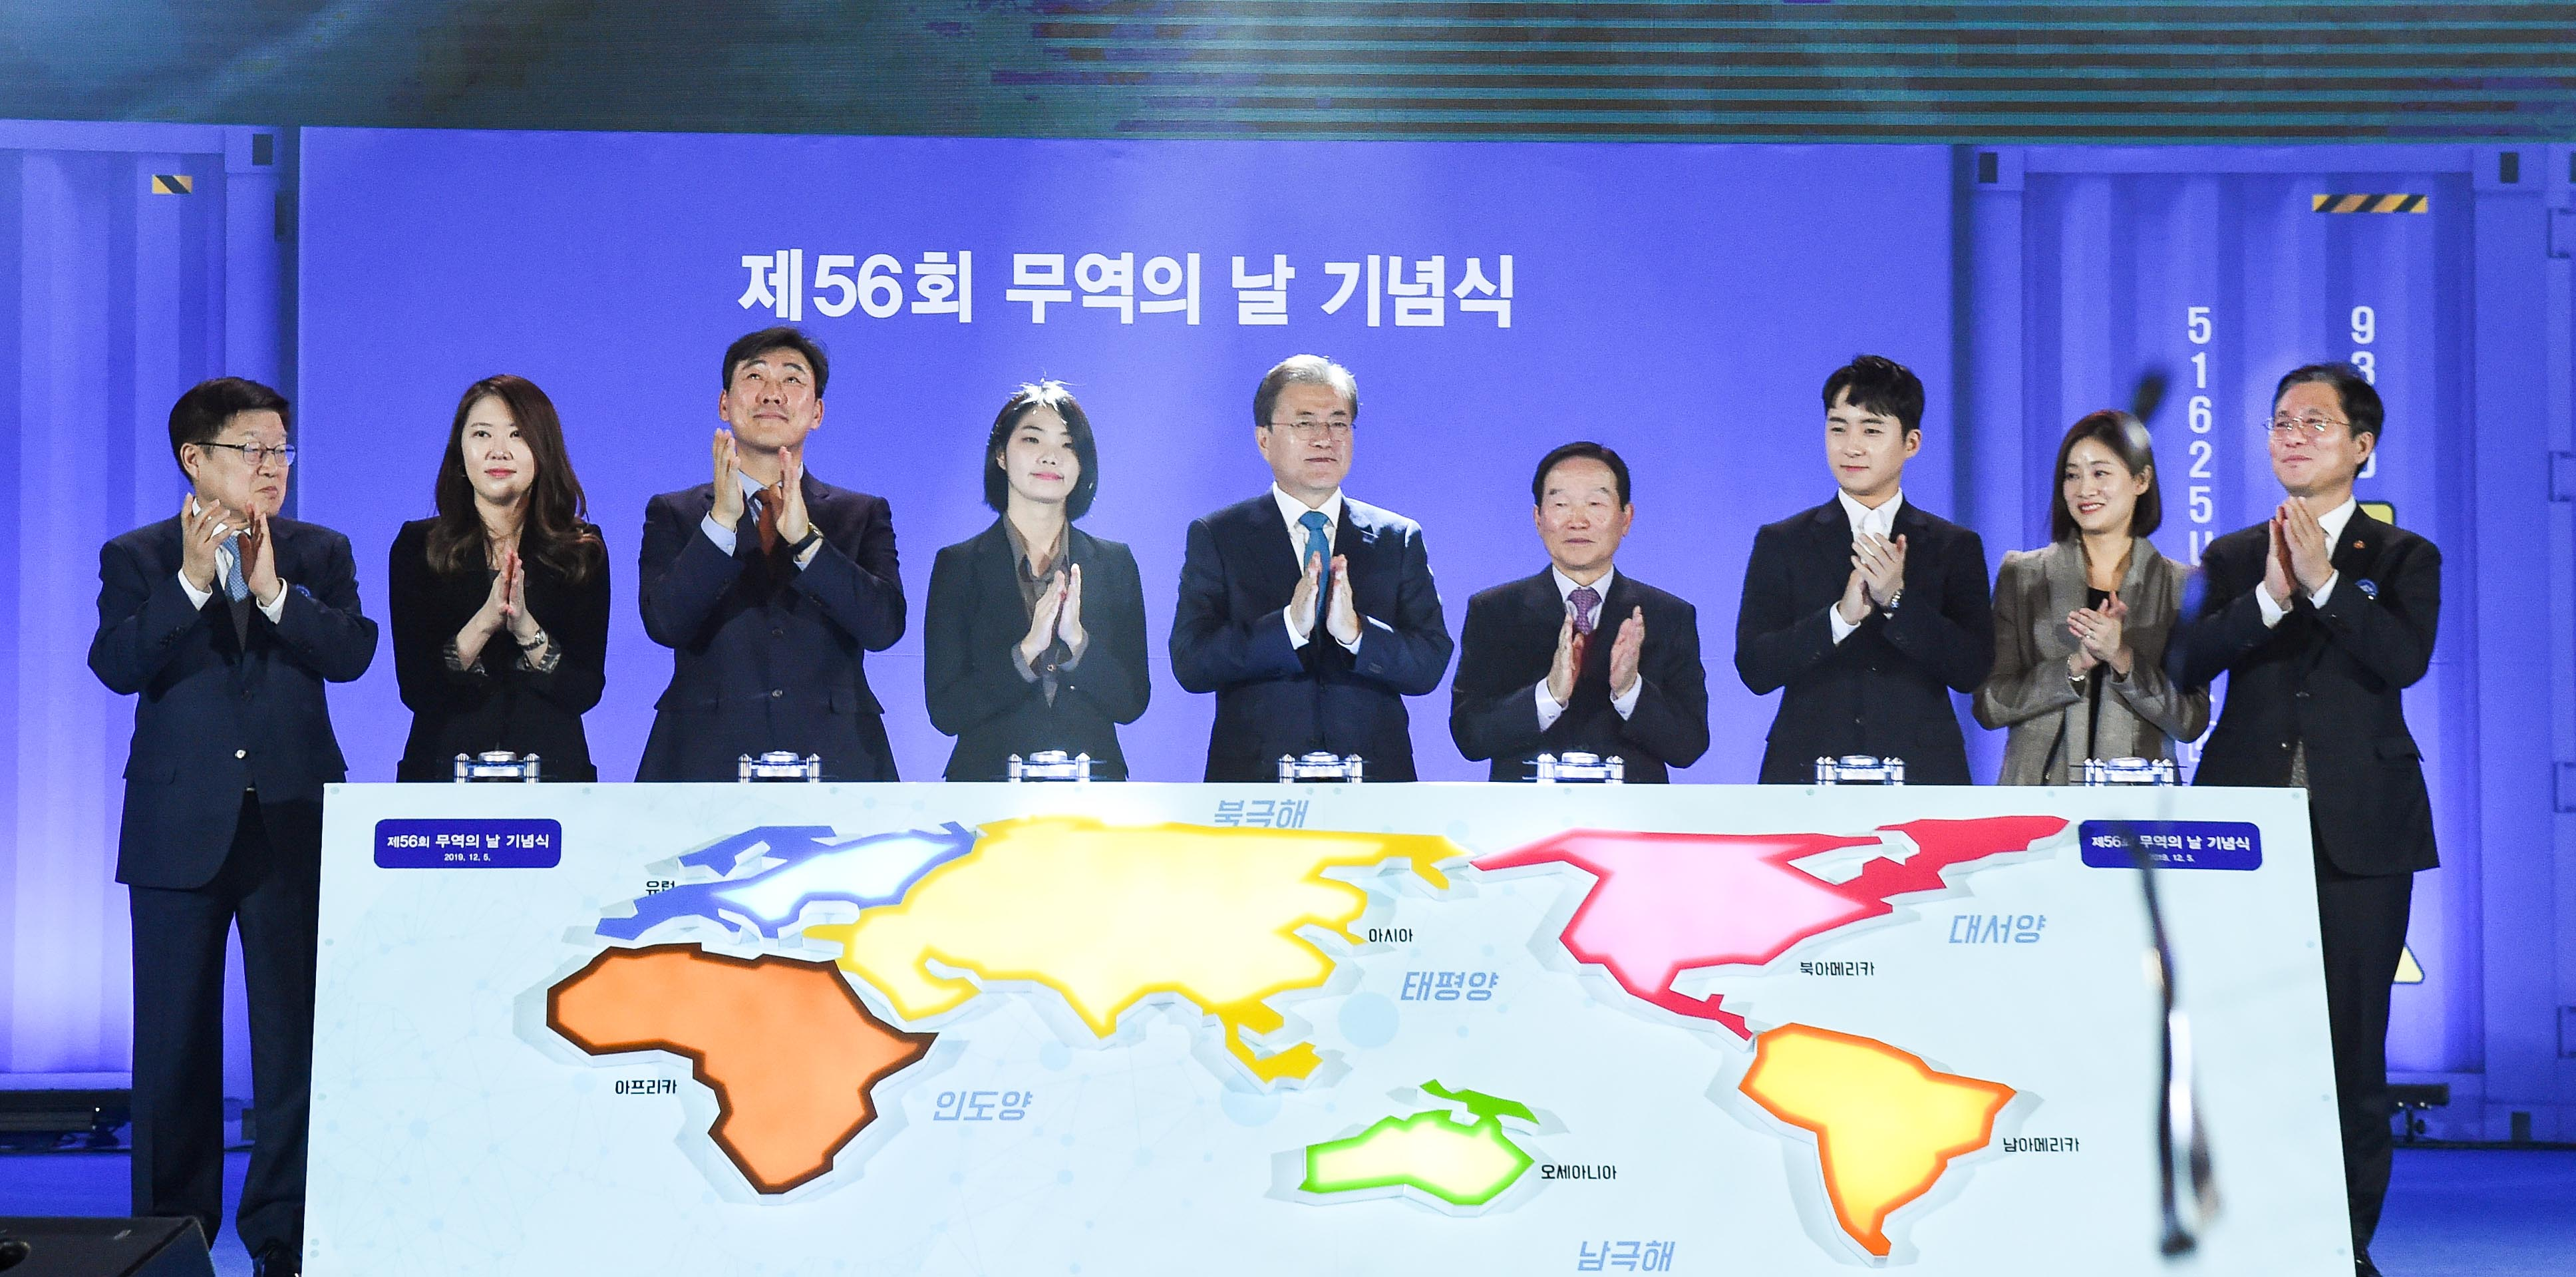 Minister Sung attends Korea's 56th Trade Day Ceremony